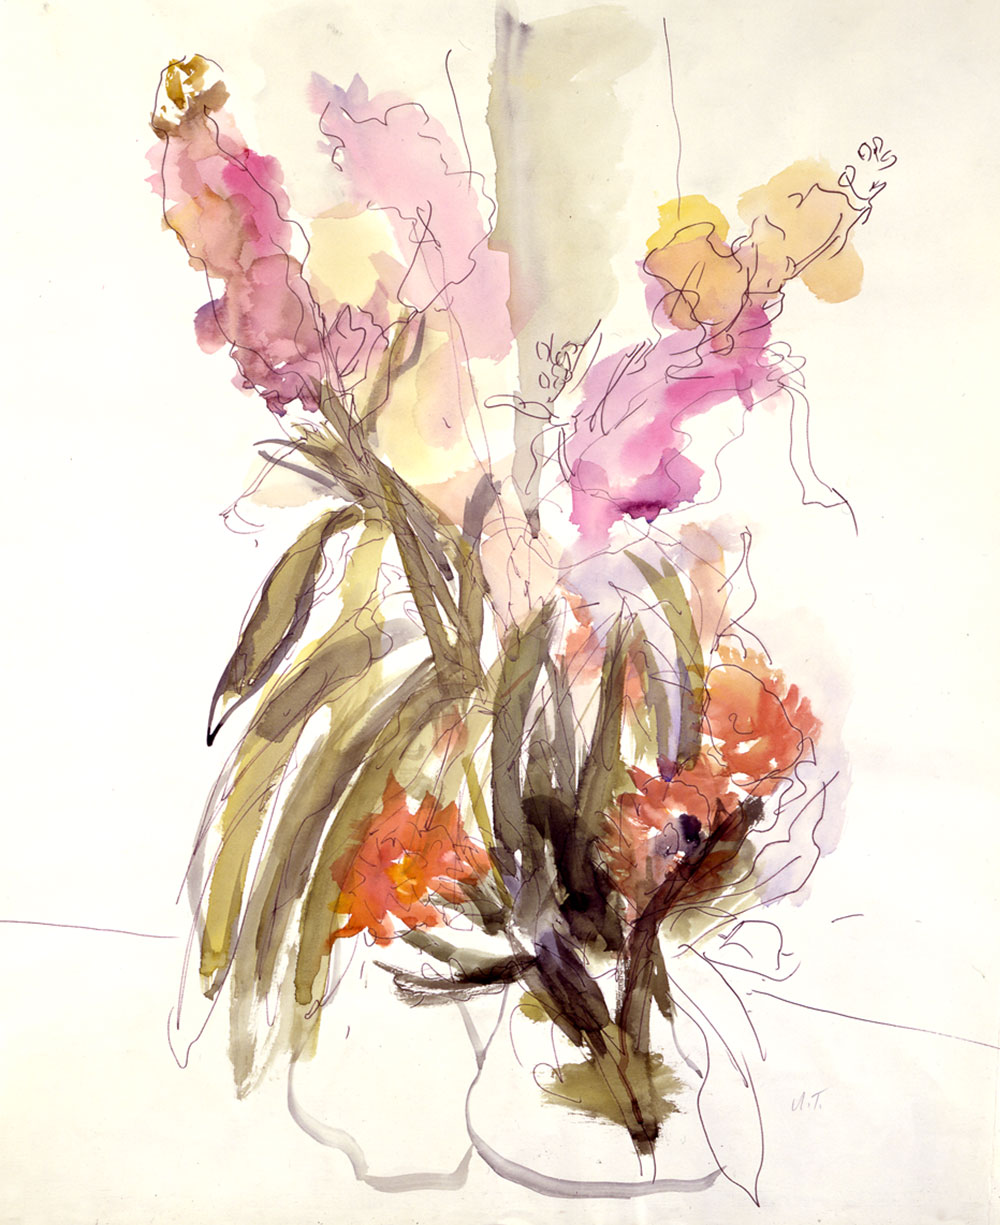 Anna Ticho, Israeli, born in Moravia 1894-1980, Vase with Red and Yellow Gladioli, 1969 Watercolor and graphite on paper, 76x63 cm, The Israel Museum, Jerusalem, Anna Ticho Bequest